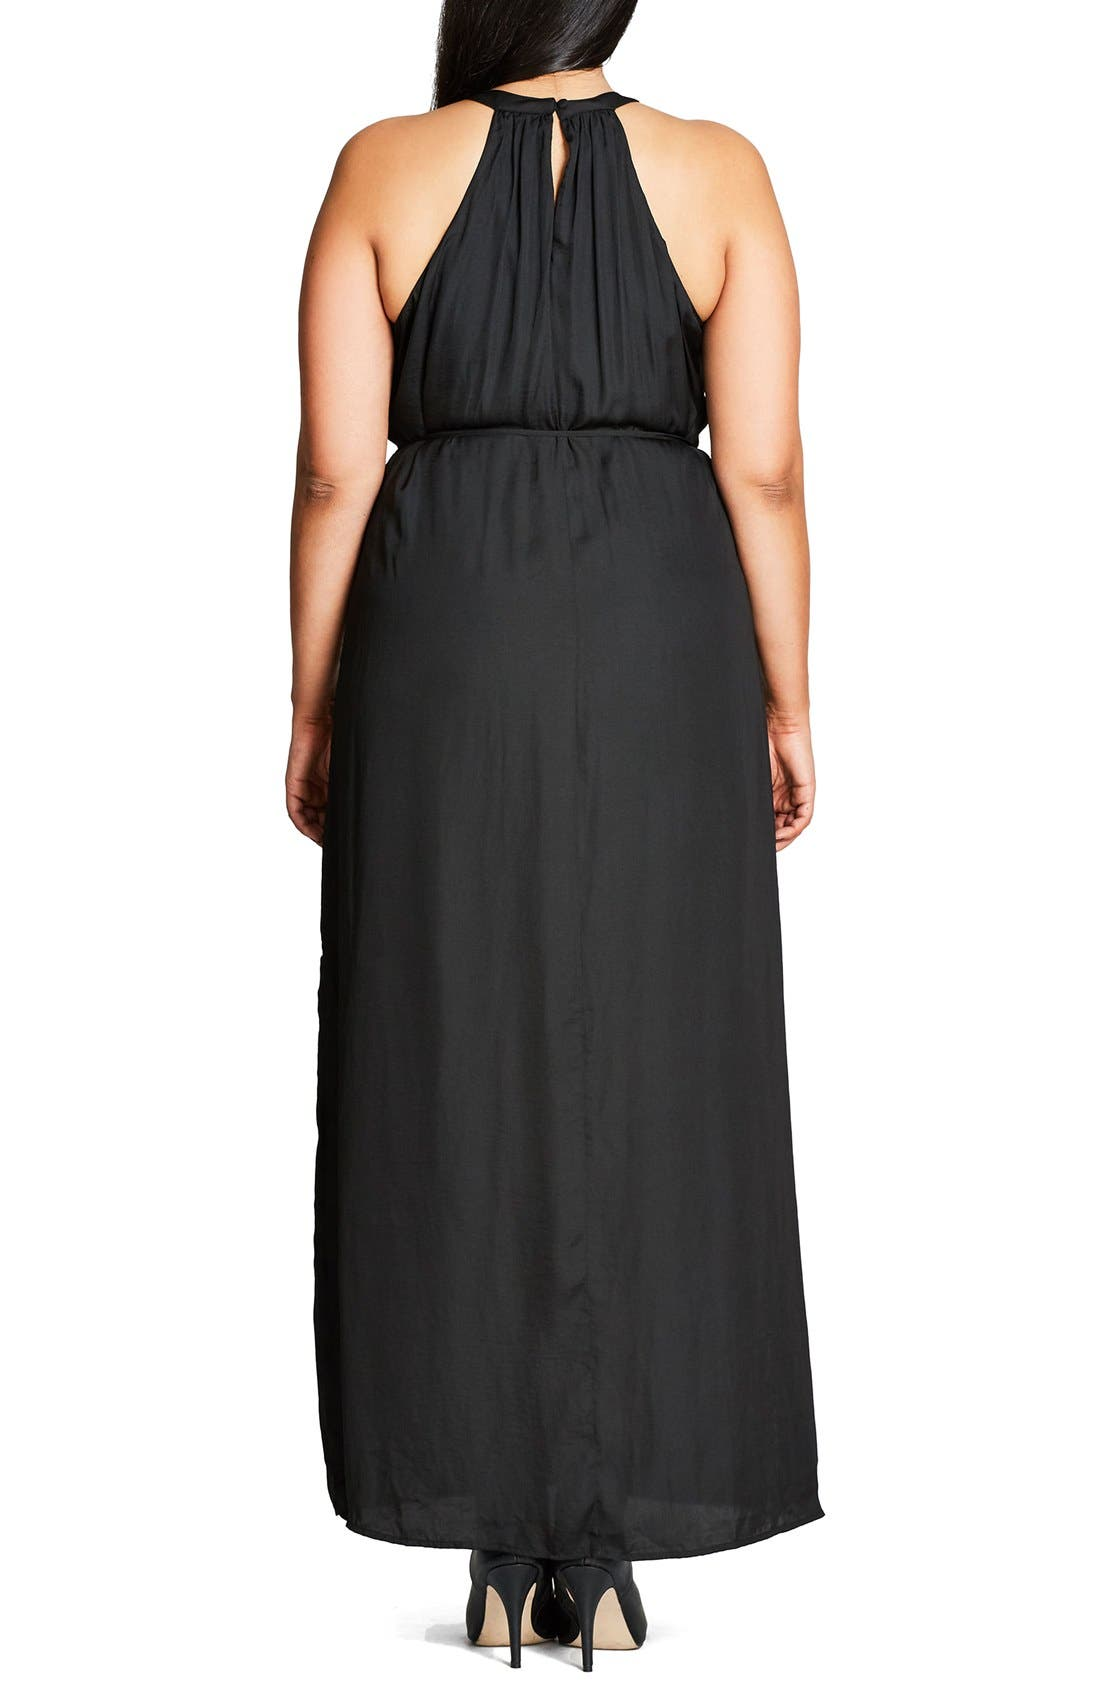 Ring Detail Maxi Dress,                             Alternate thumbnail 7, color,                             001